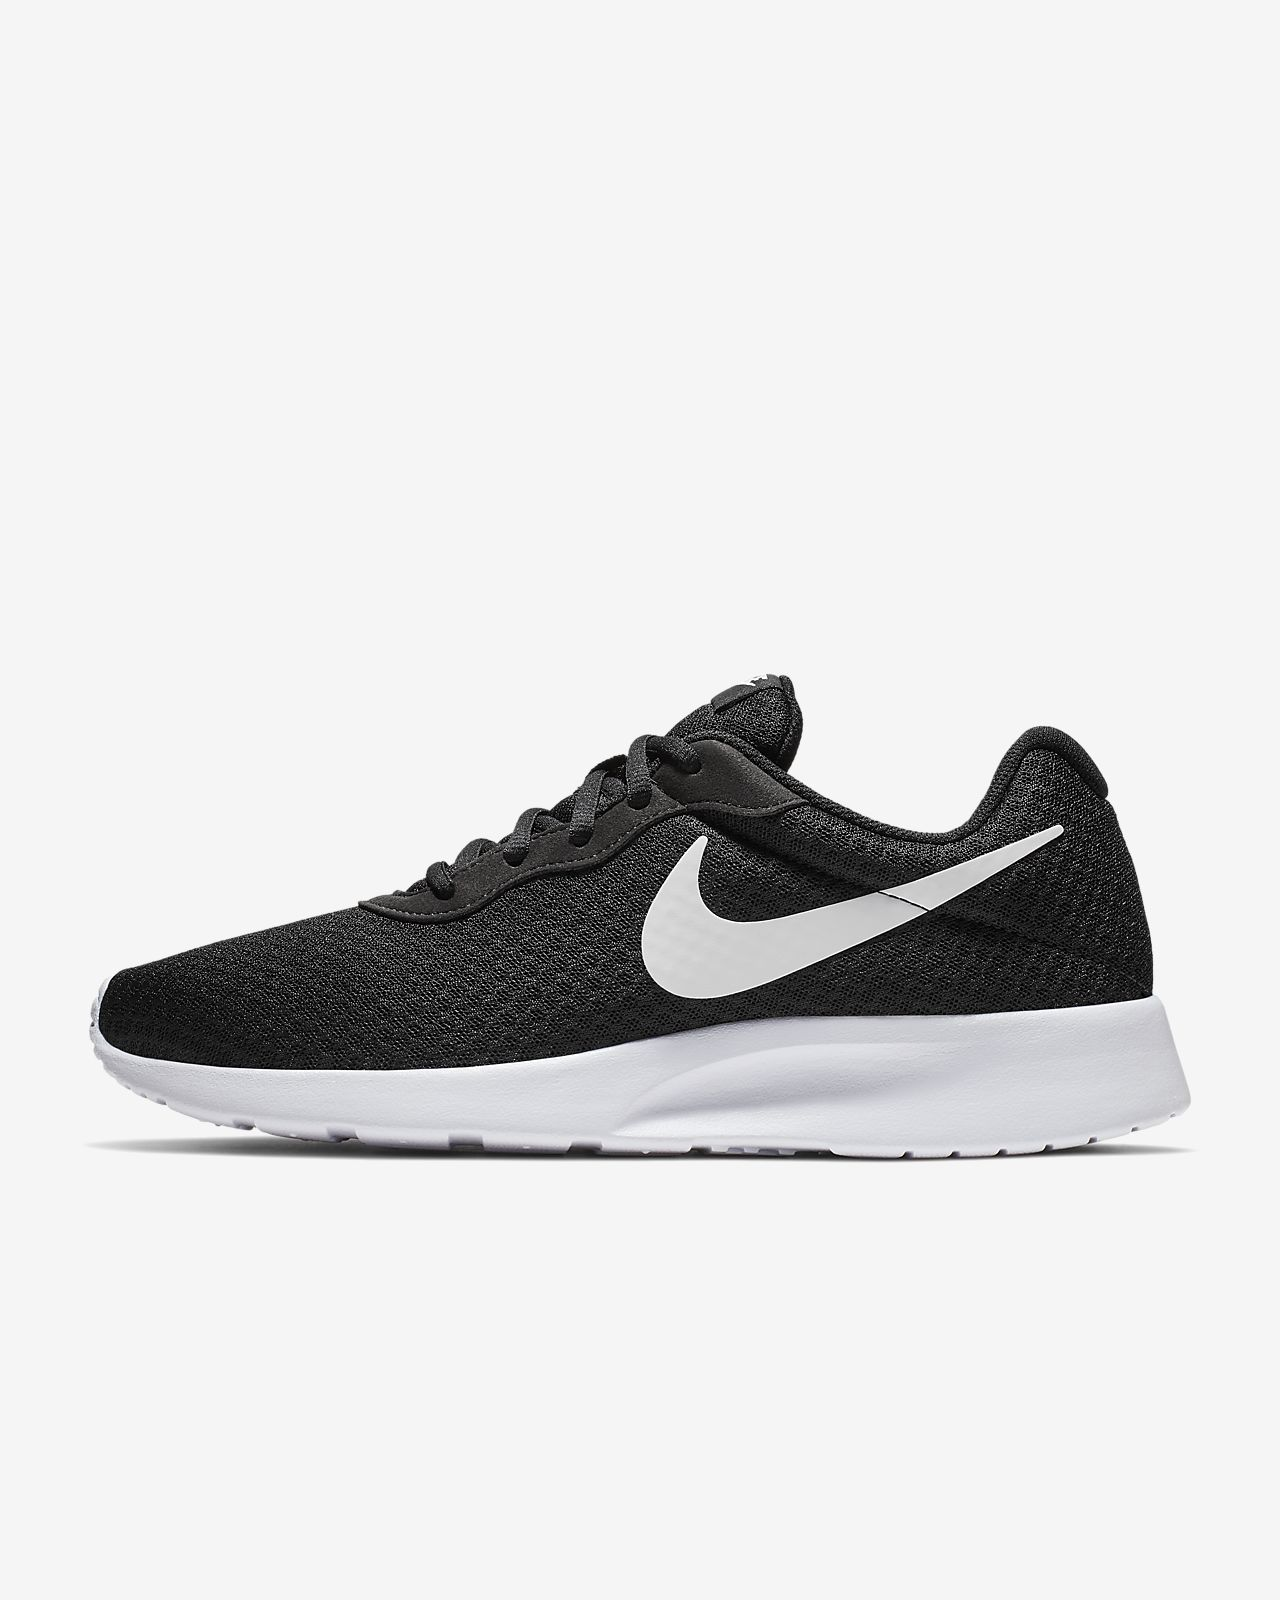 cbceae1d8c47f nikebetterworld shoes on sale   OFF73% Discounts